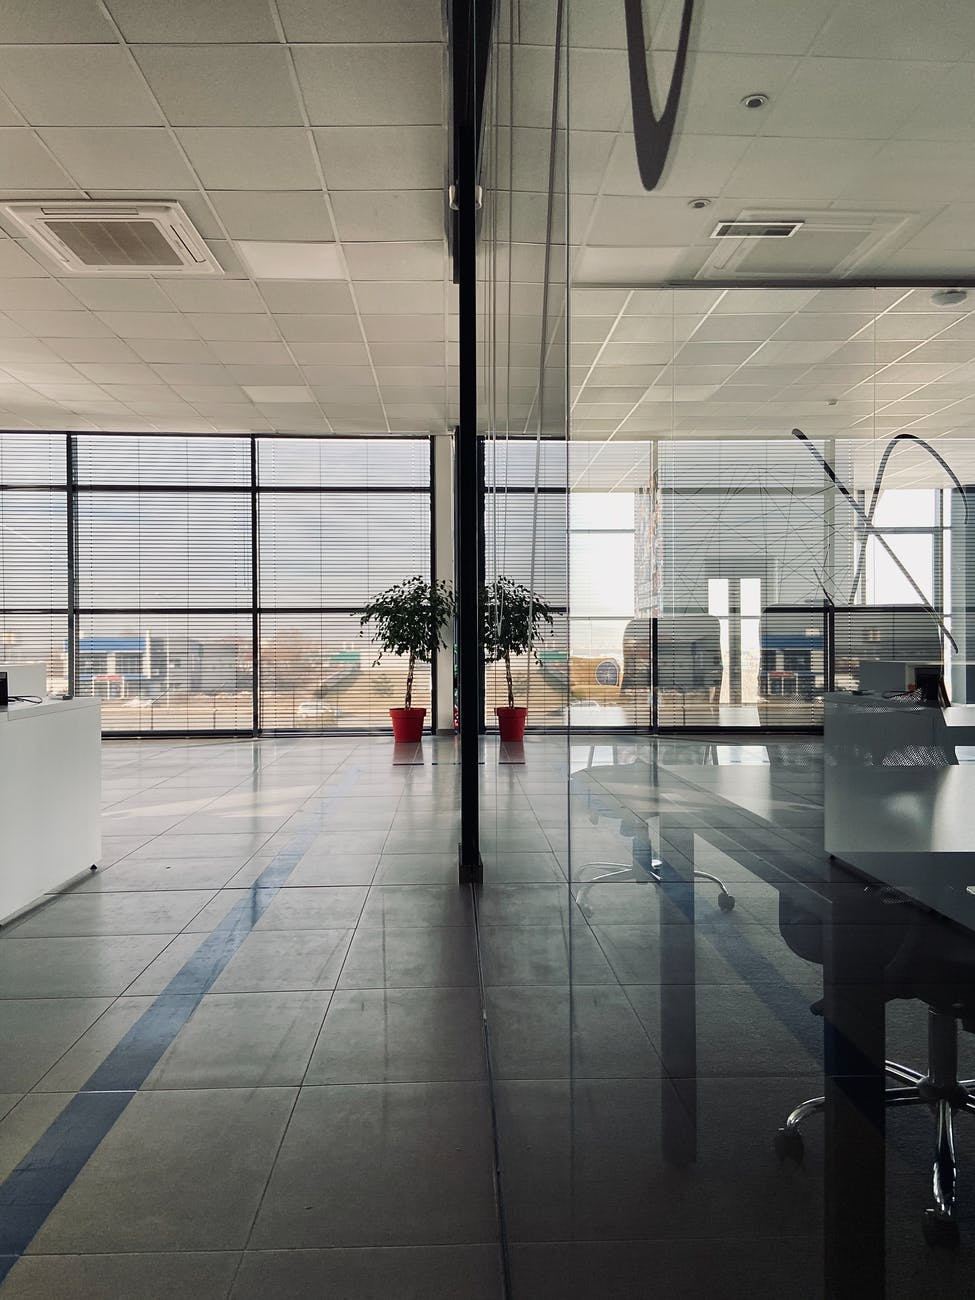 How to Get Out of a Commercial Lease